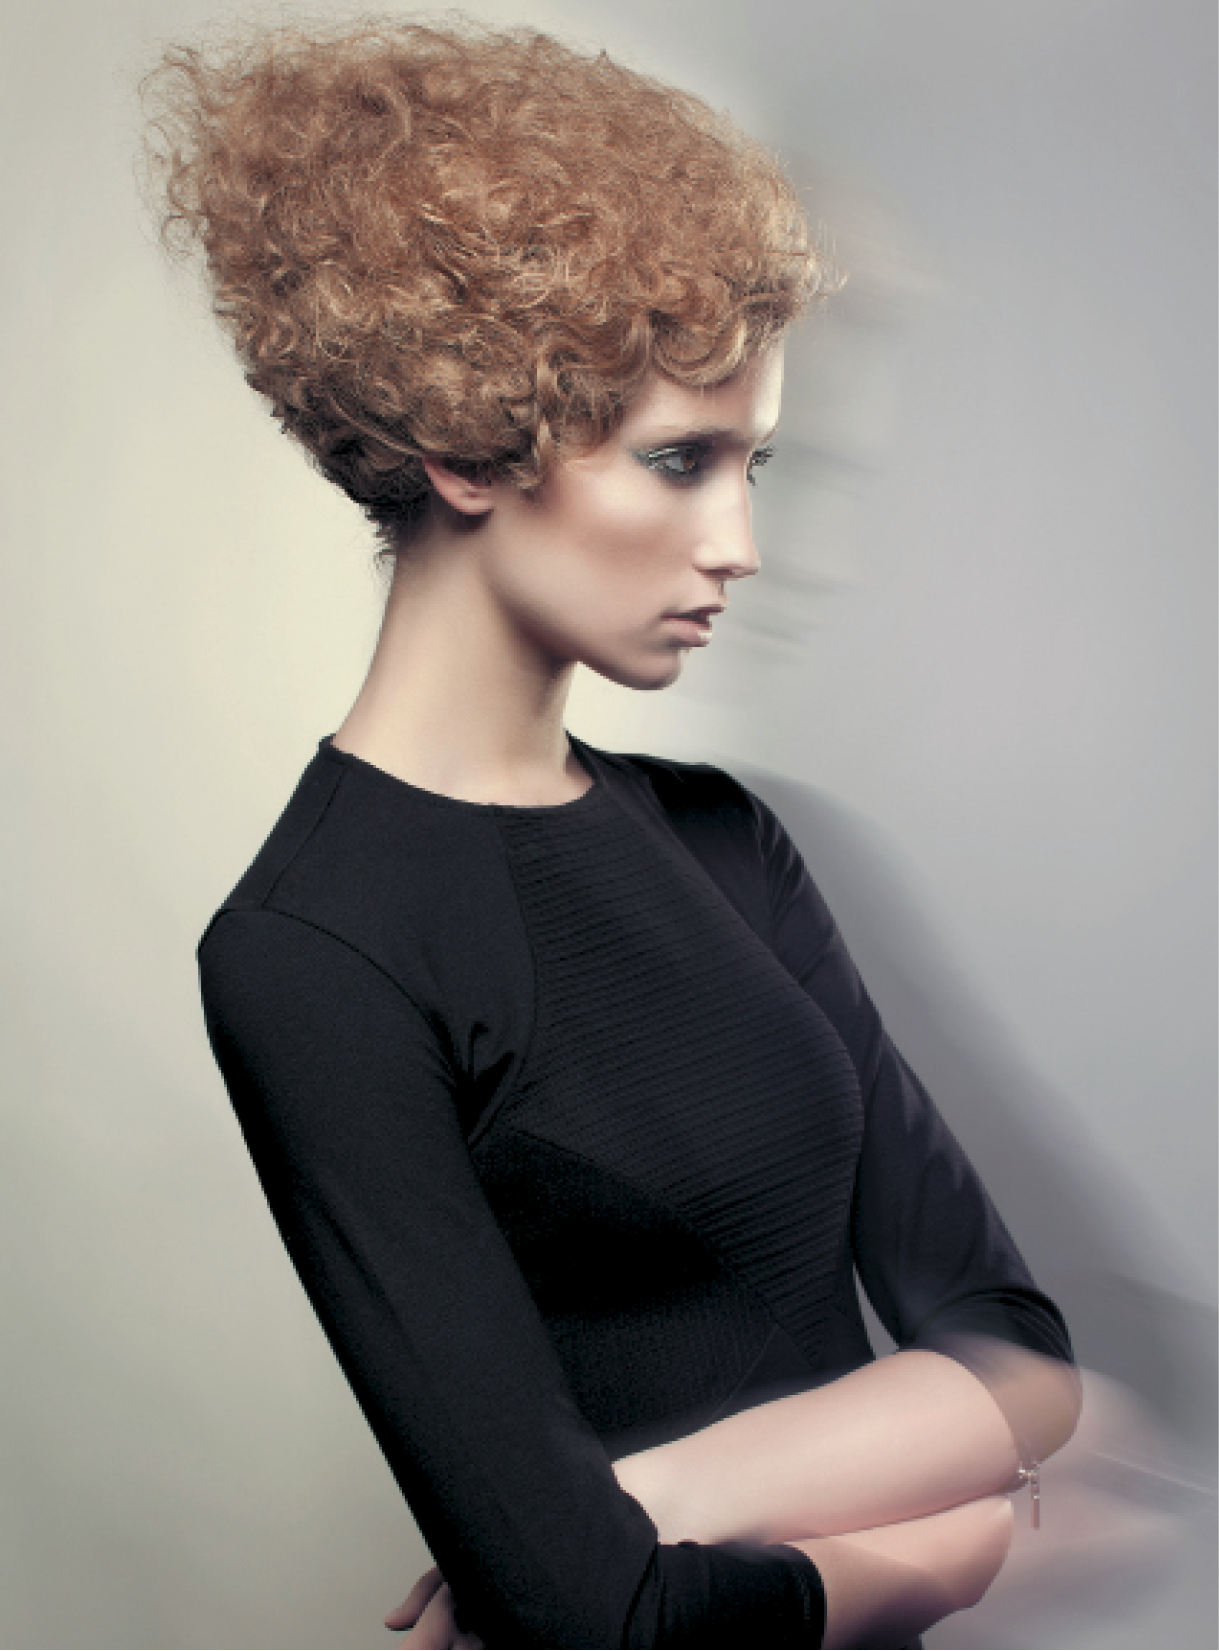 To achieve this look, Jorge Buccio separated every wave and curl, and brushed them out to create extreme volume and texture, similar to an Afro. After achieving body and volume, he compacted the hair with his hands using Schwarzkopf Professional Osis Freeze to resemble wool felt. He applied Osis Session hairspray to finish the look.